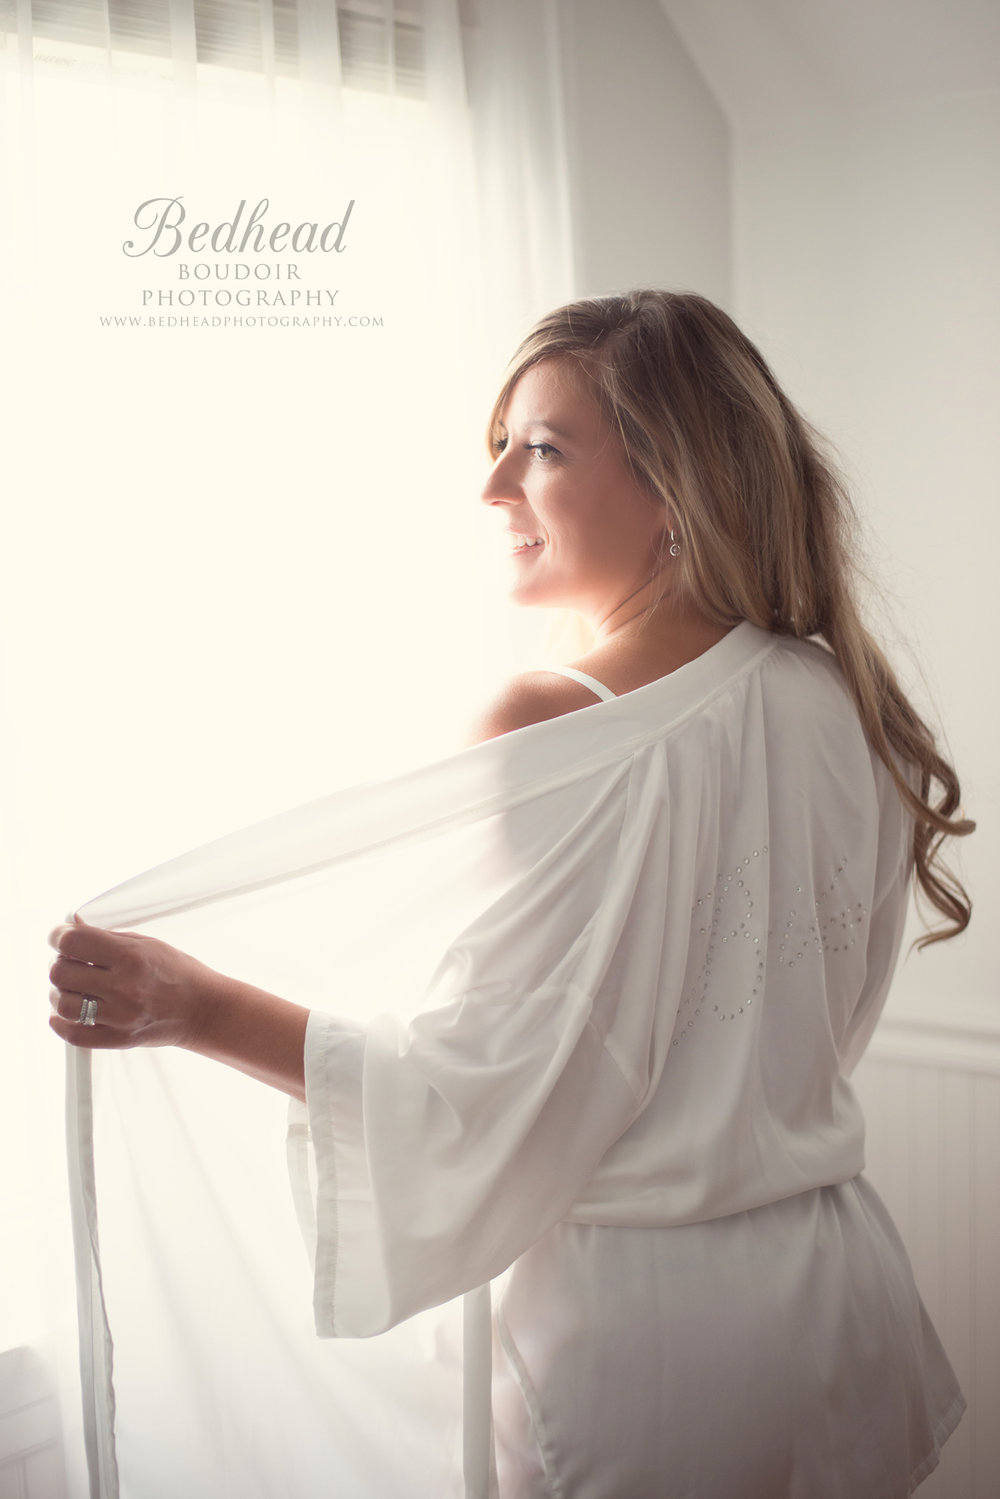 bedhead_boudoir_photography_winnetka